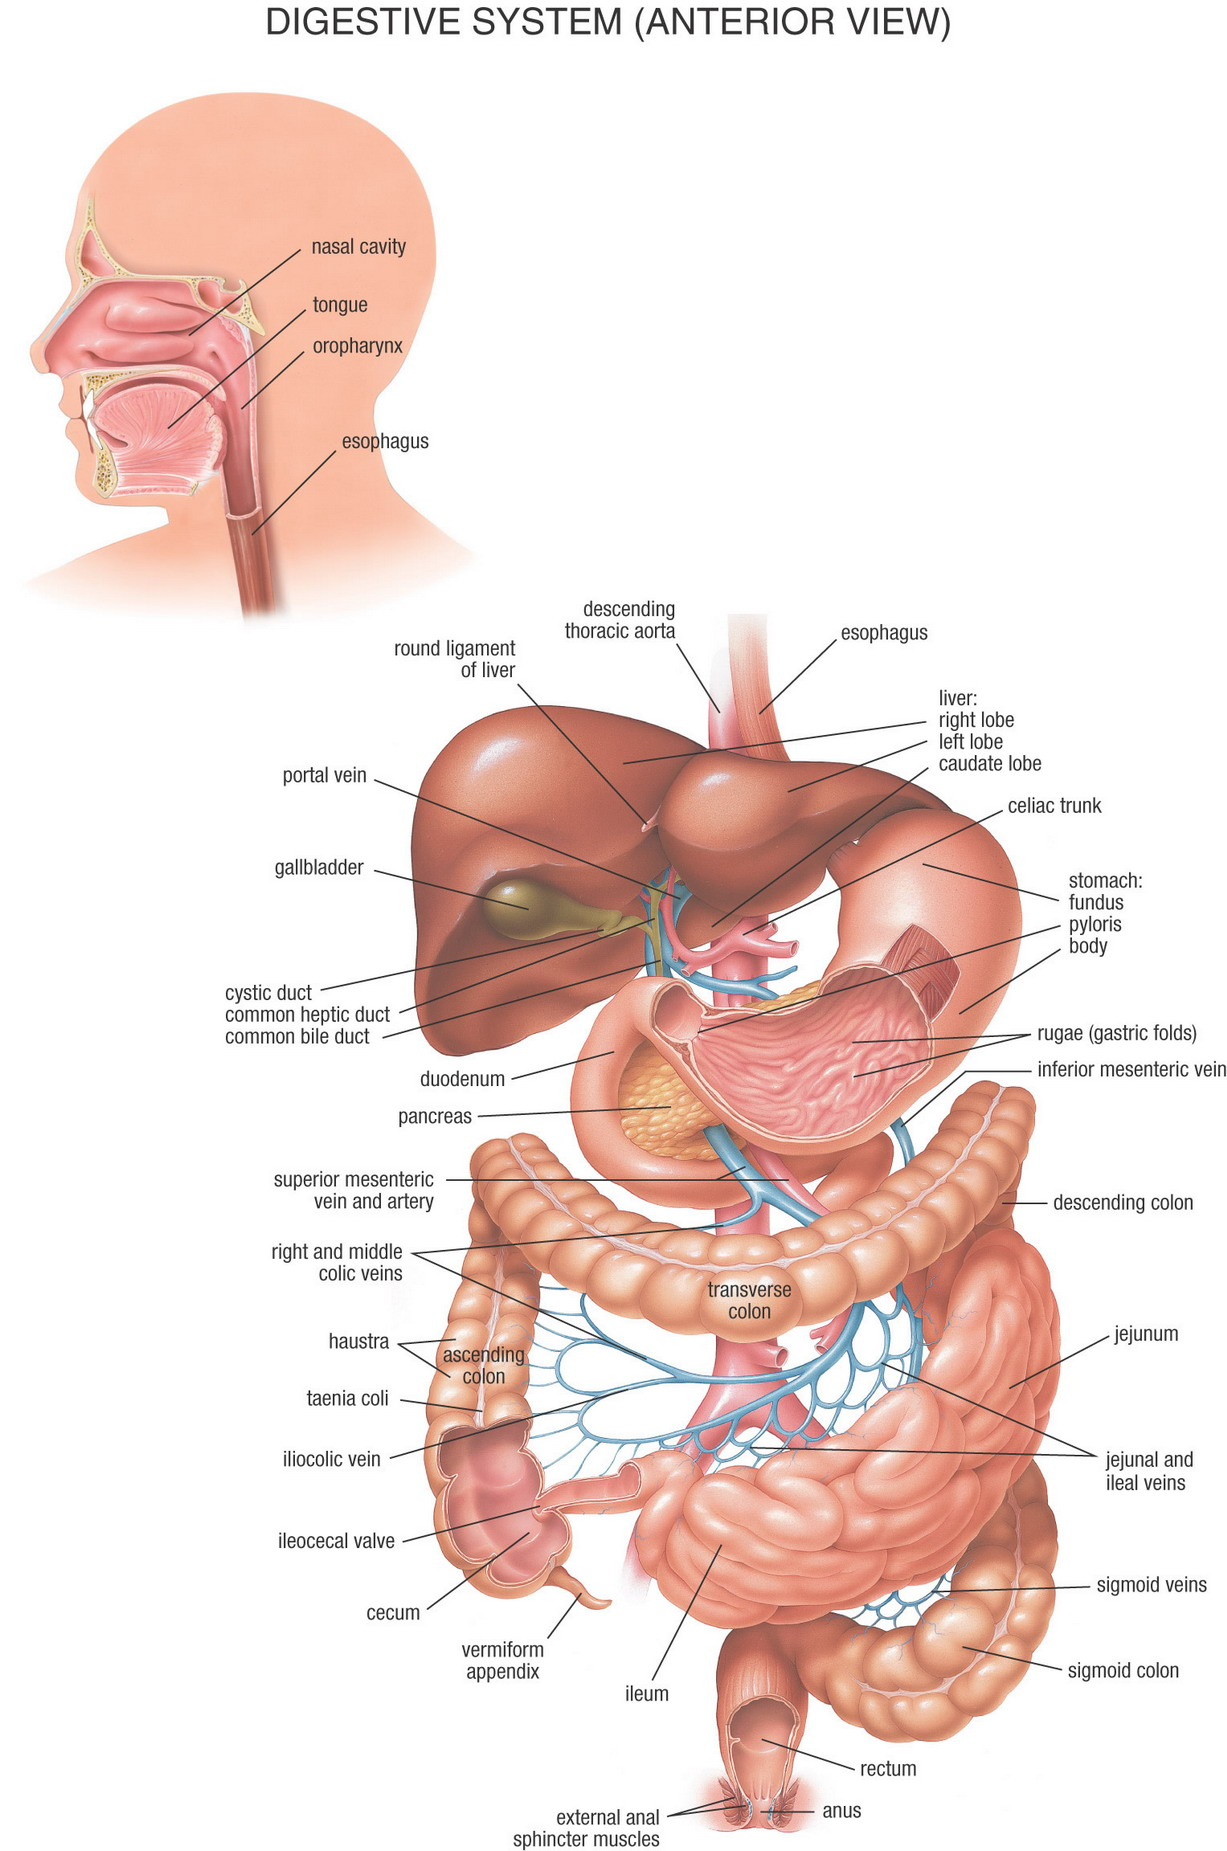 Digestive System Anterior View